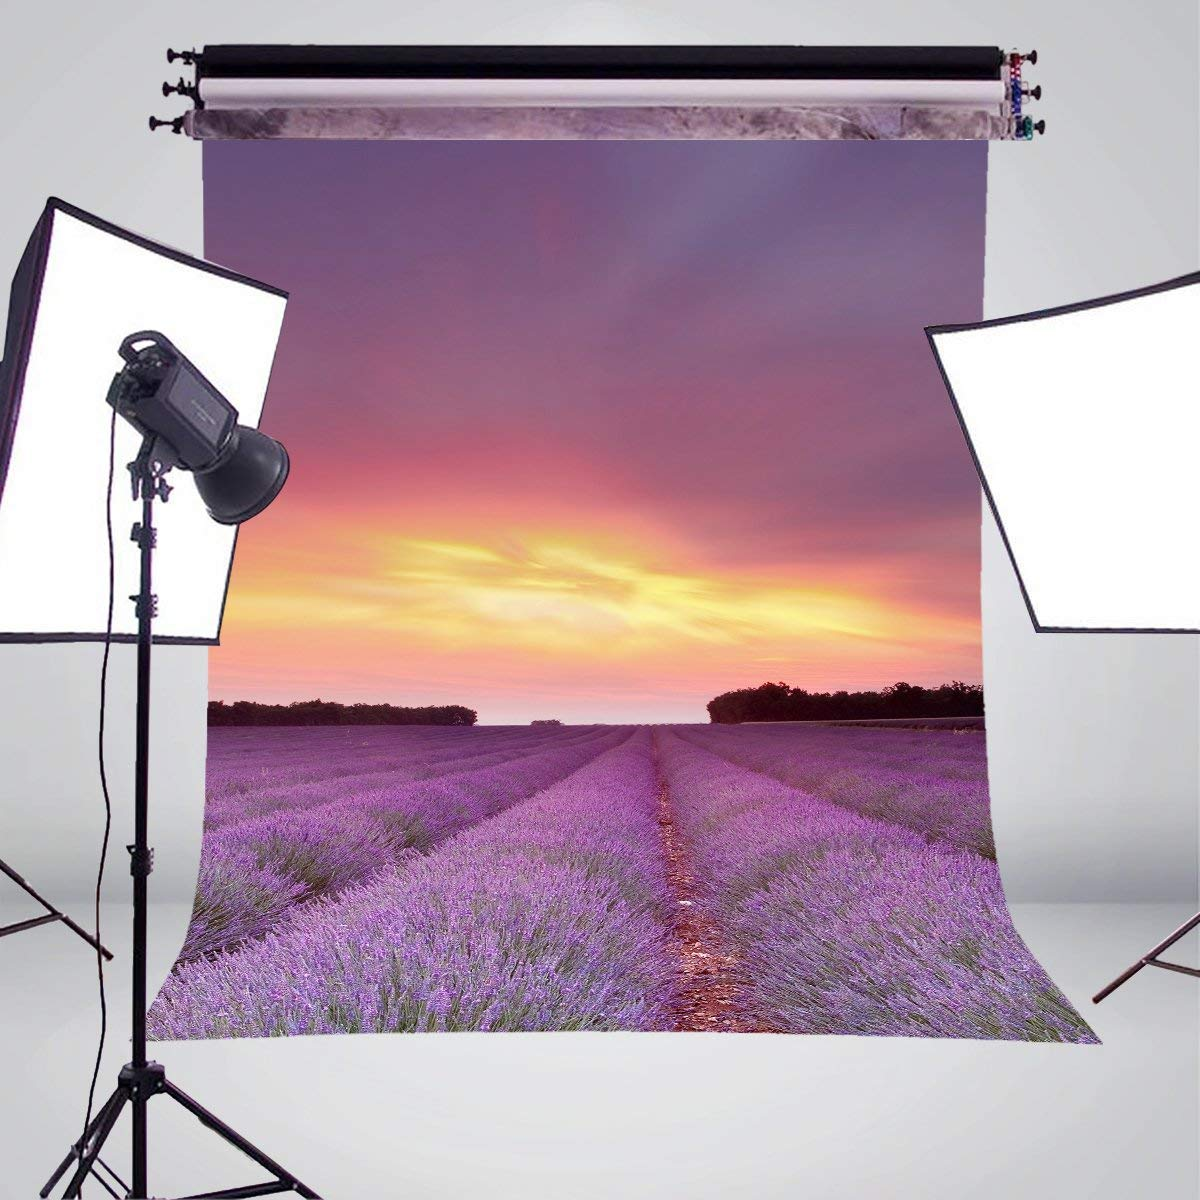 Lavandula Fields Sky Clouds Flowers Photography Background Sunset Sunrise Backdrop Studio Props Wall 150x220cm in Photo Studio Accessories from Consumer Electronics